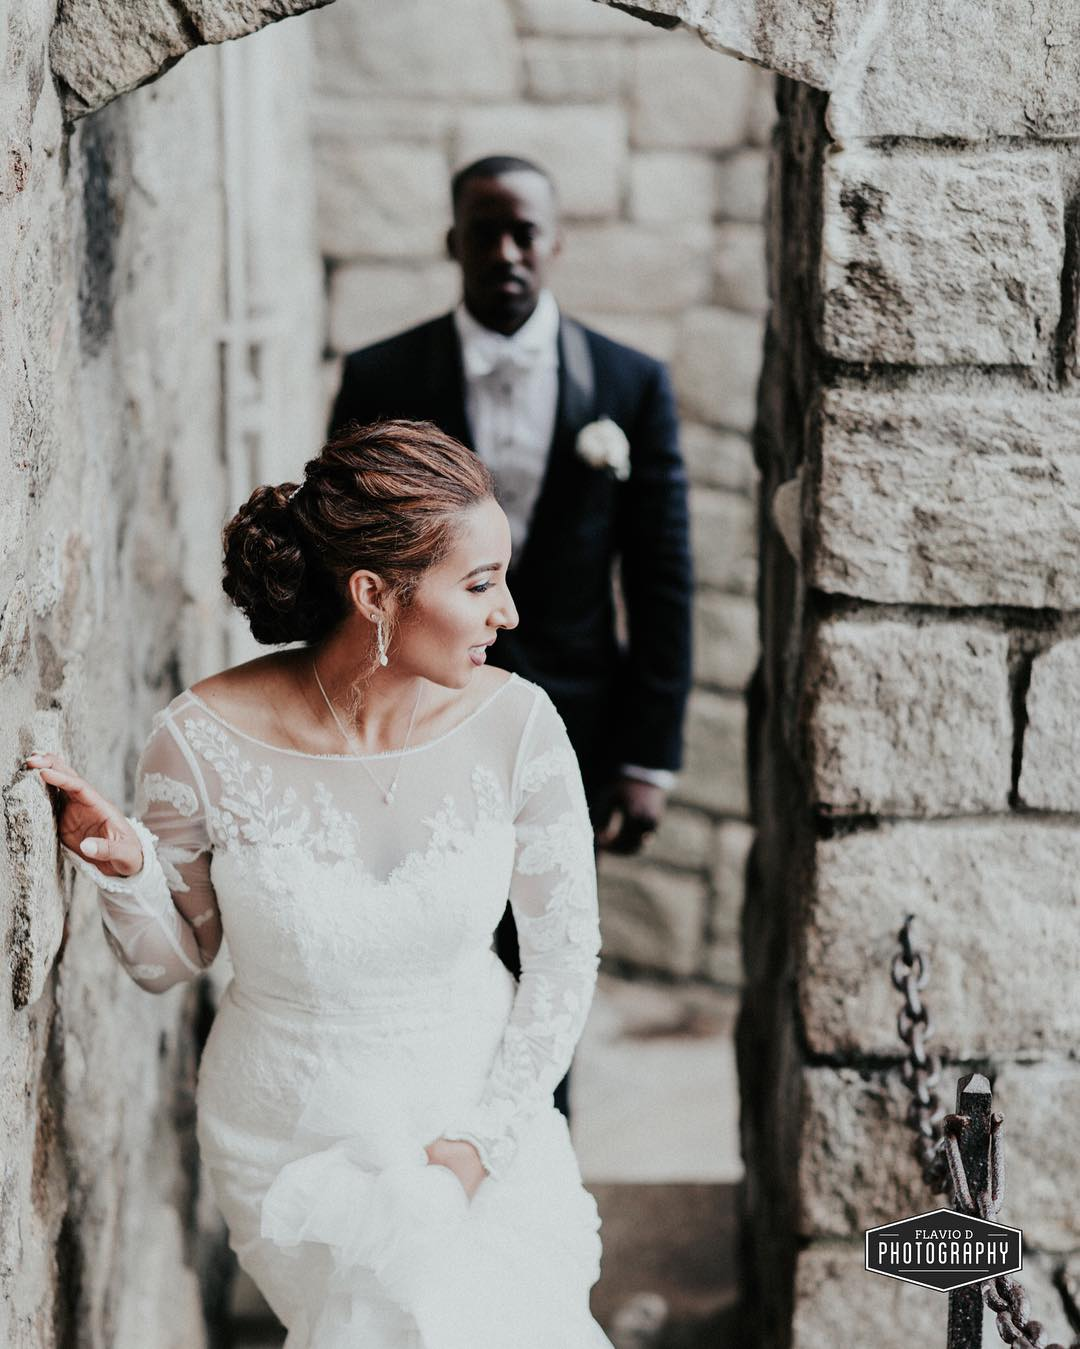 First look photo of a bride standing near a wall with groom standing behind her